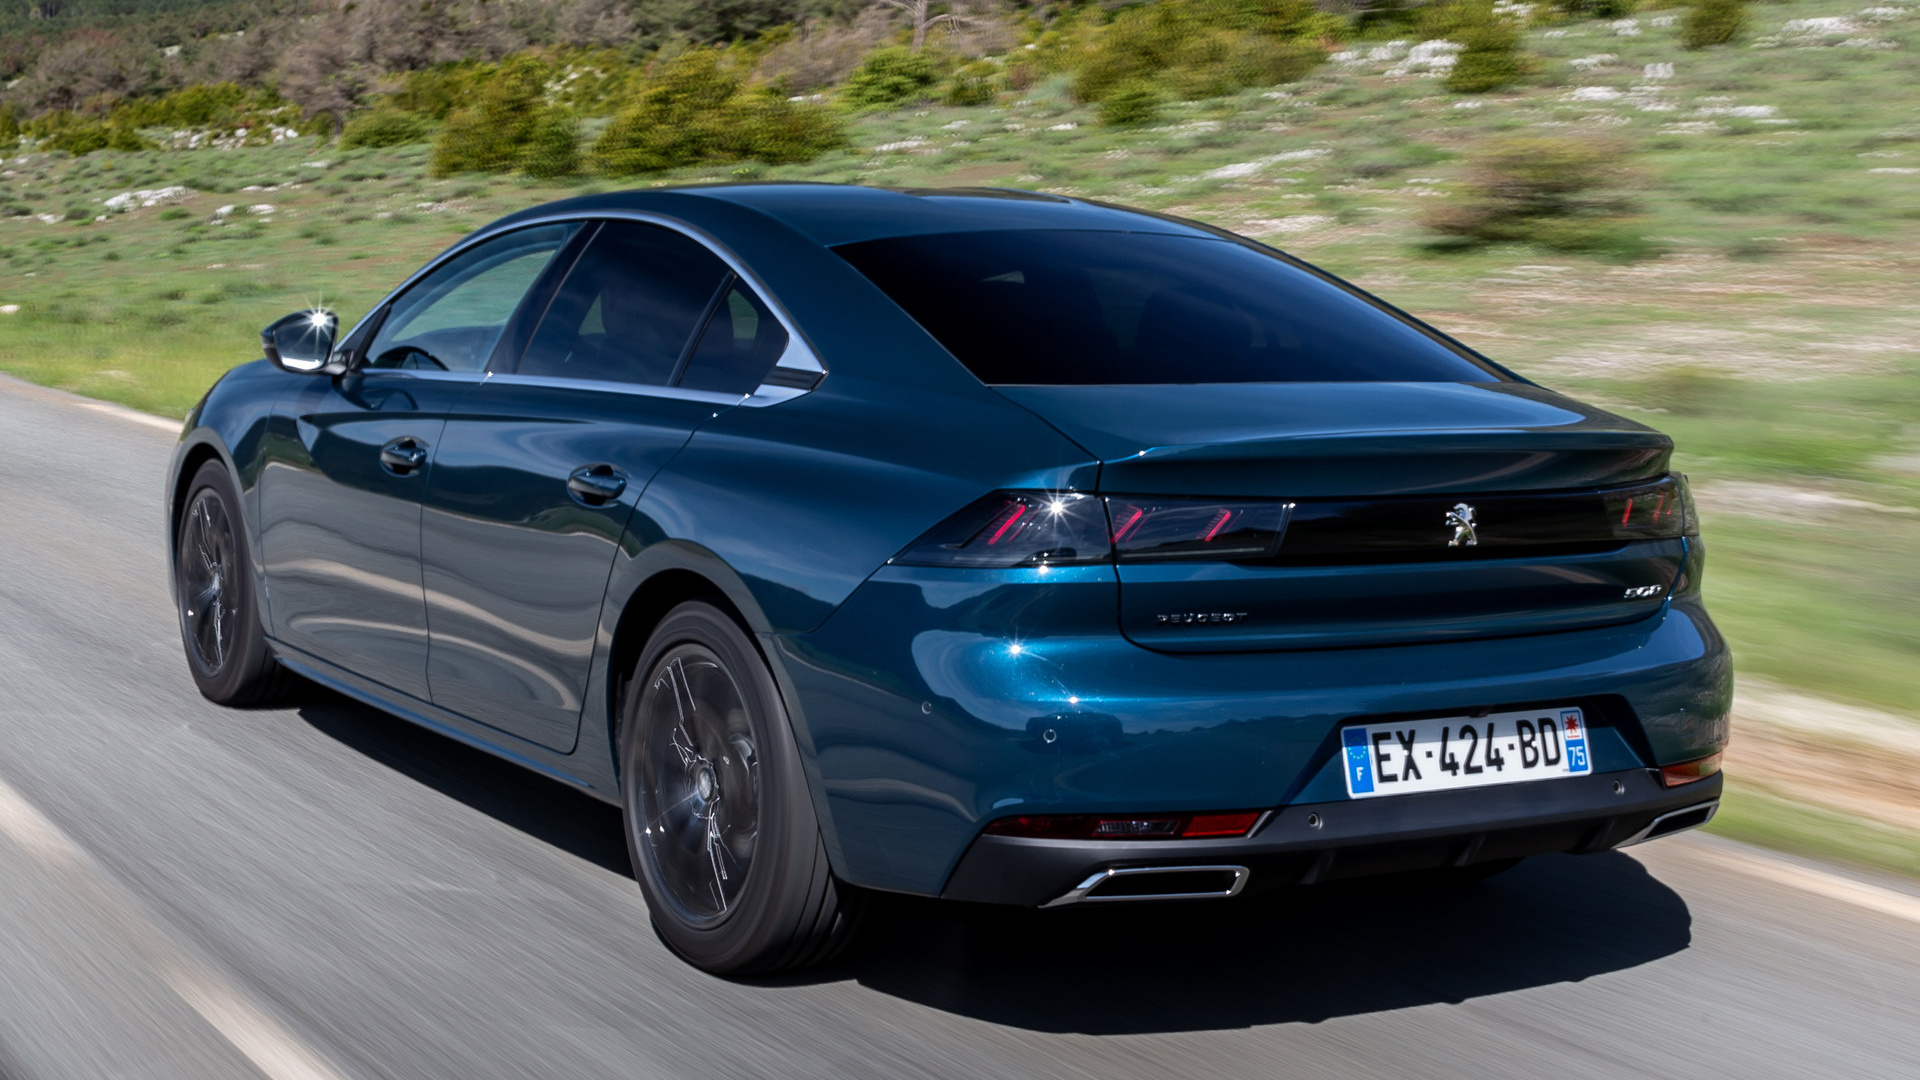 2018 Peugeot 508 - Wallpapers and HD Images | Car Pixel